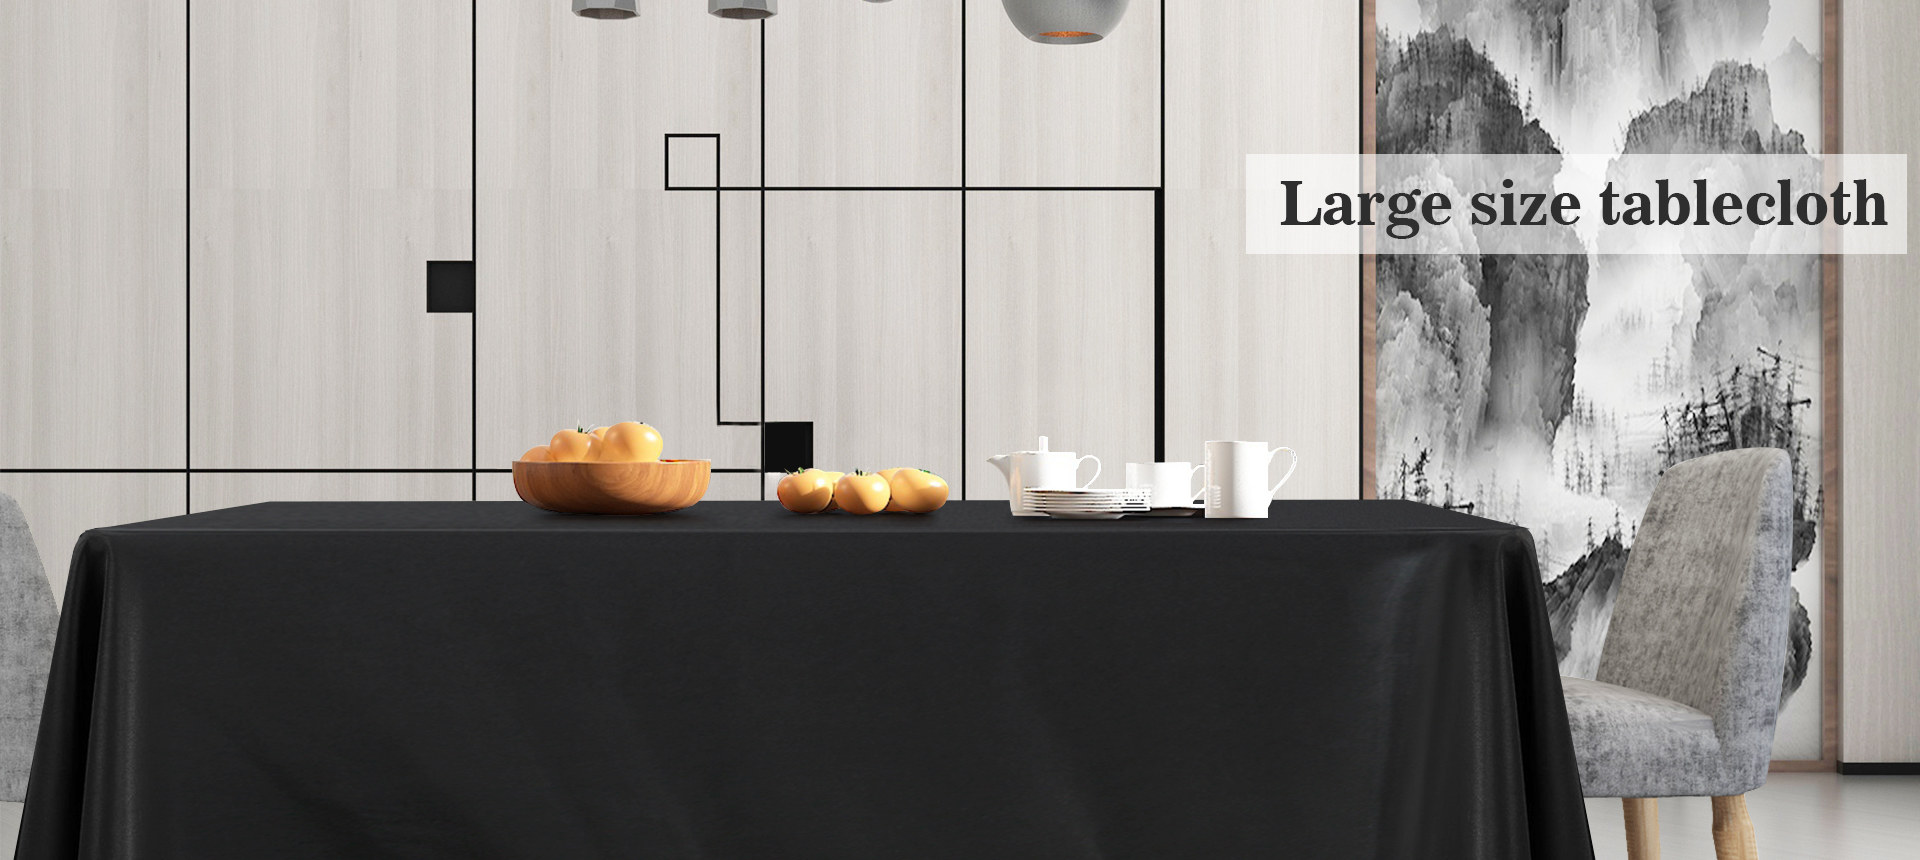 Large Size Black Tablecloth